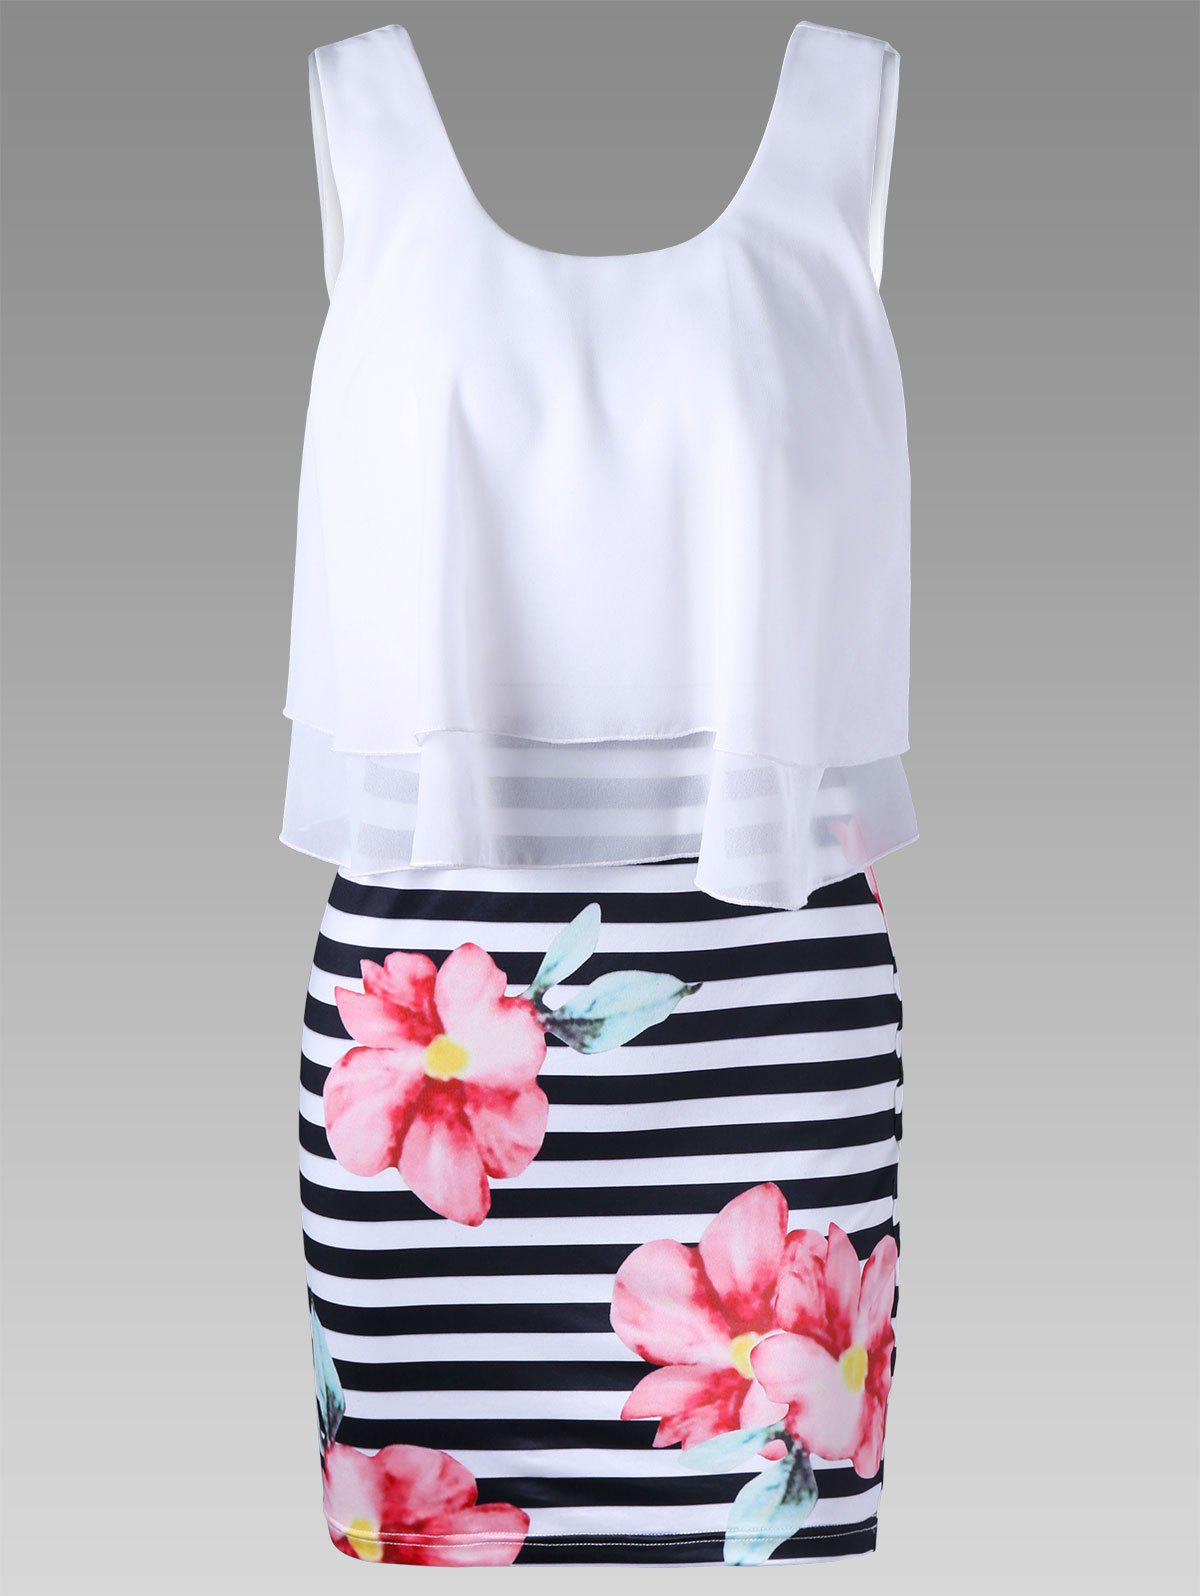 Floral with Striped Tight Popover DressWOMEN<br><br>Size: 2XL; Color: WHITE; Style: Casual; Material: Polyester,Spandex; Silhouette: Sheath; Dresses Length: Mini; Neckline: U Neck; Sleeve Length: Sleeveless; Pattern Type: Floral,Stripe; With Belt: No; Season: Summer; Weight: 0.2500kg; Package Contents: 1 x Dress; Occasion: Casual ,Semi Formal;